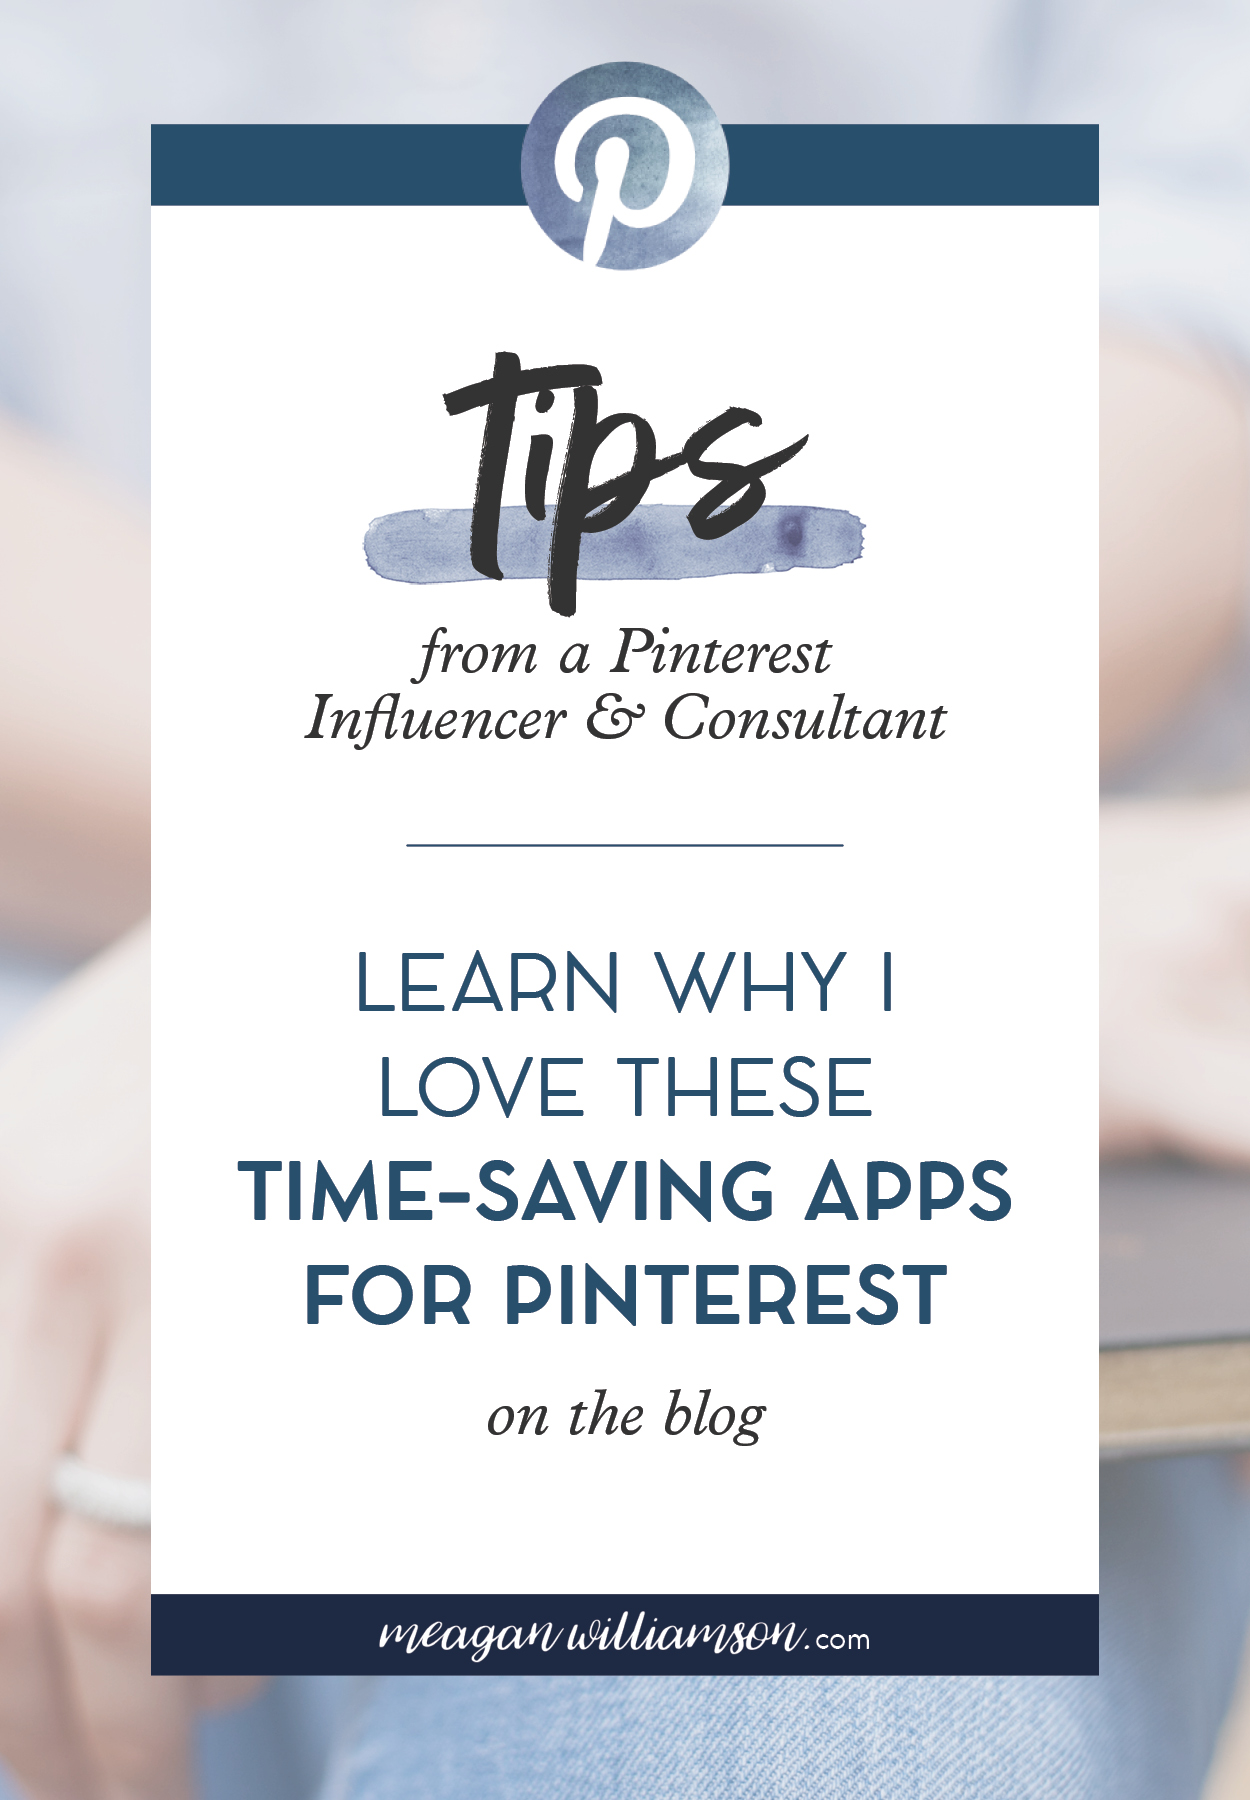 image for how time saving tools for Pinterest